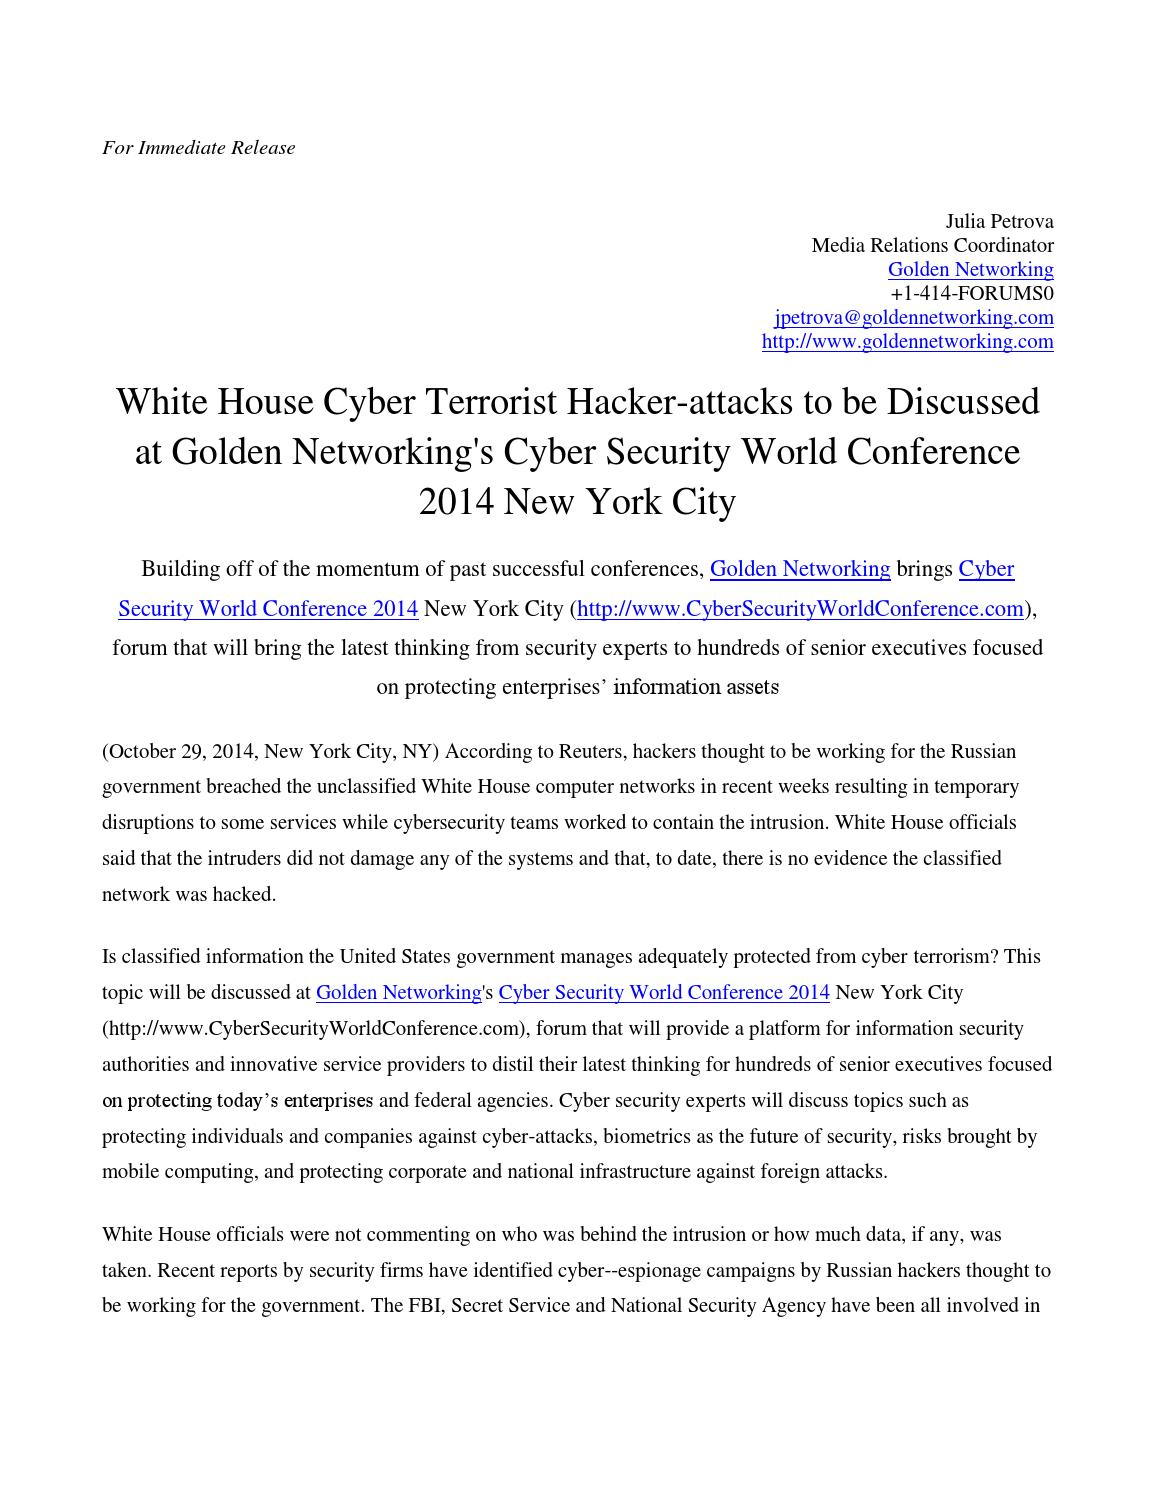 White house cyber terrorist hacker attacks to be discussed